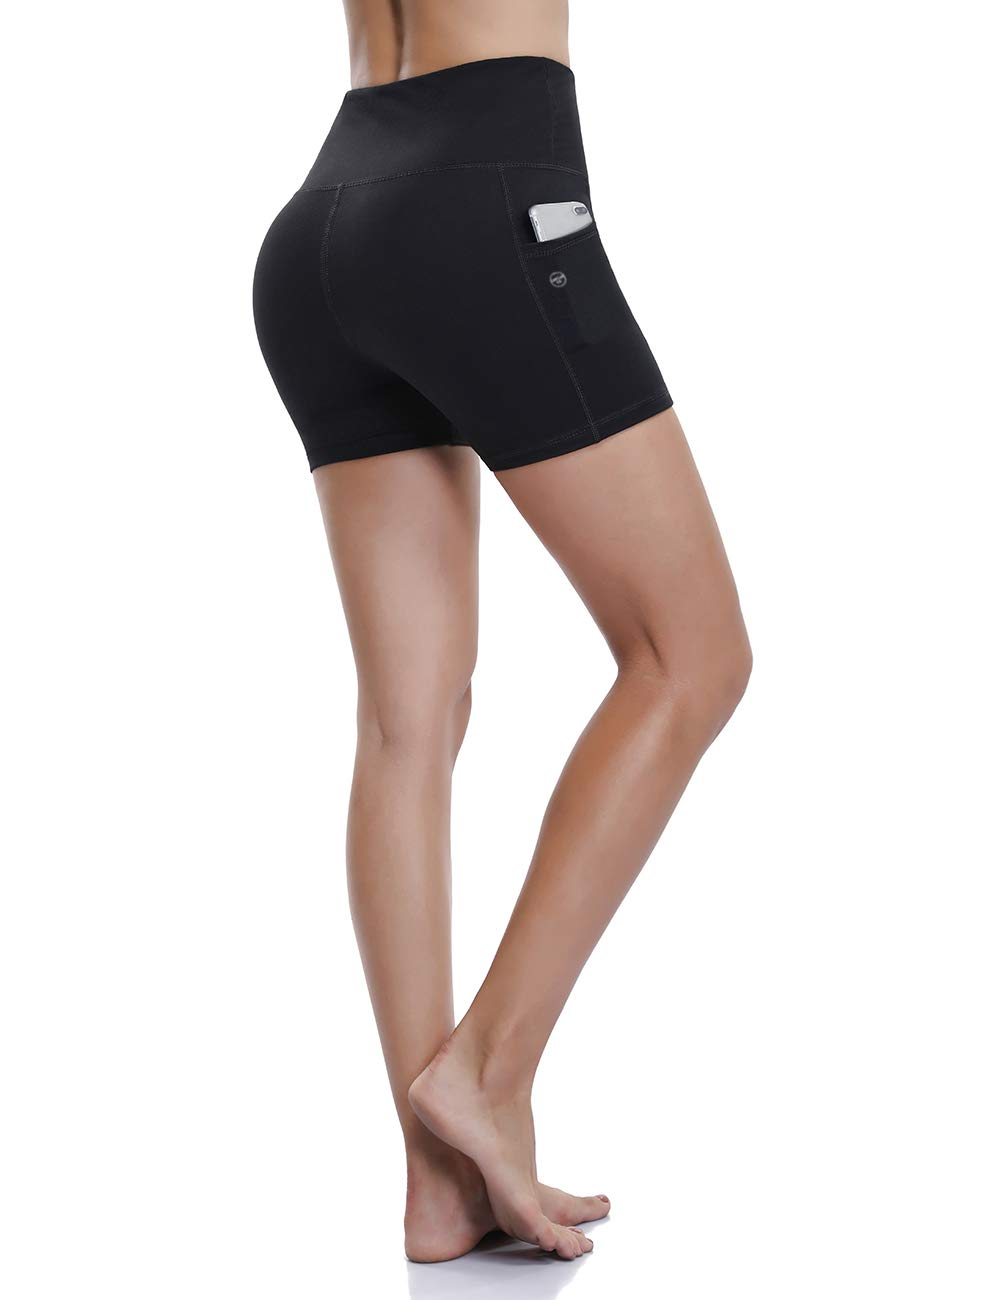 ALONG FIT Women Yoga Short with Phone Pockets